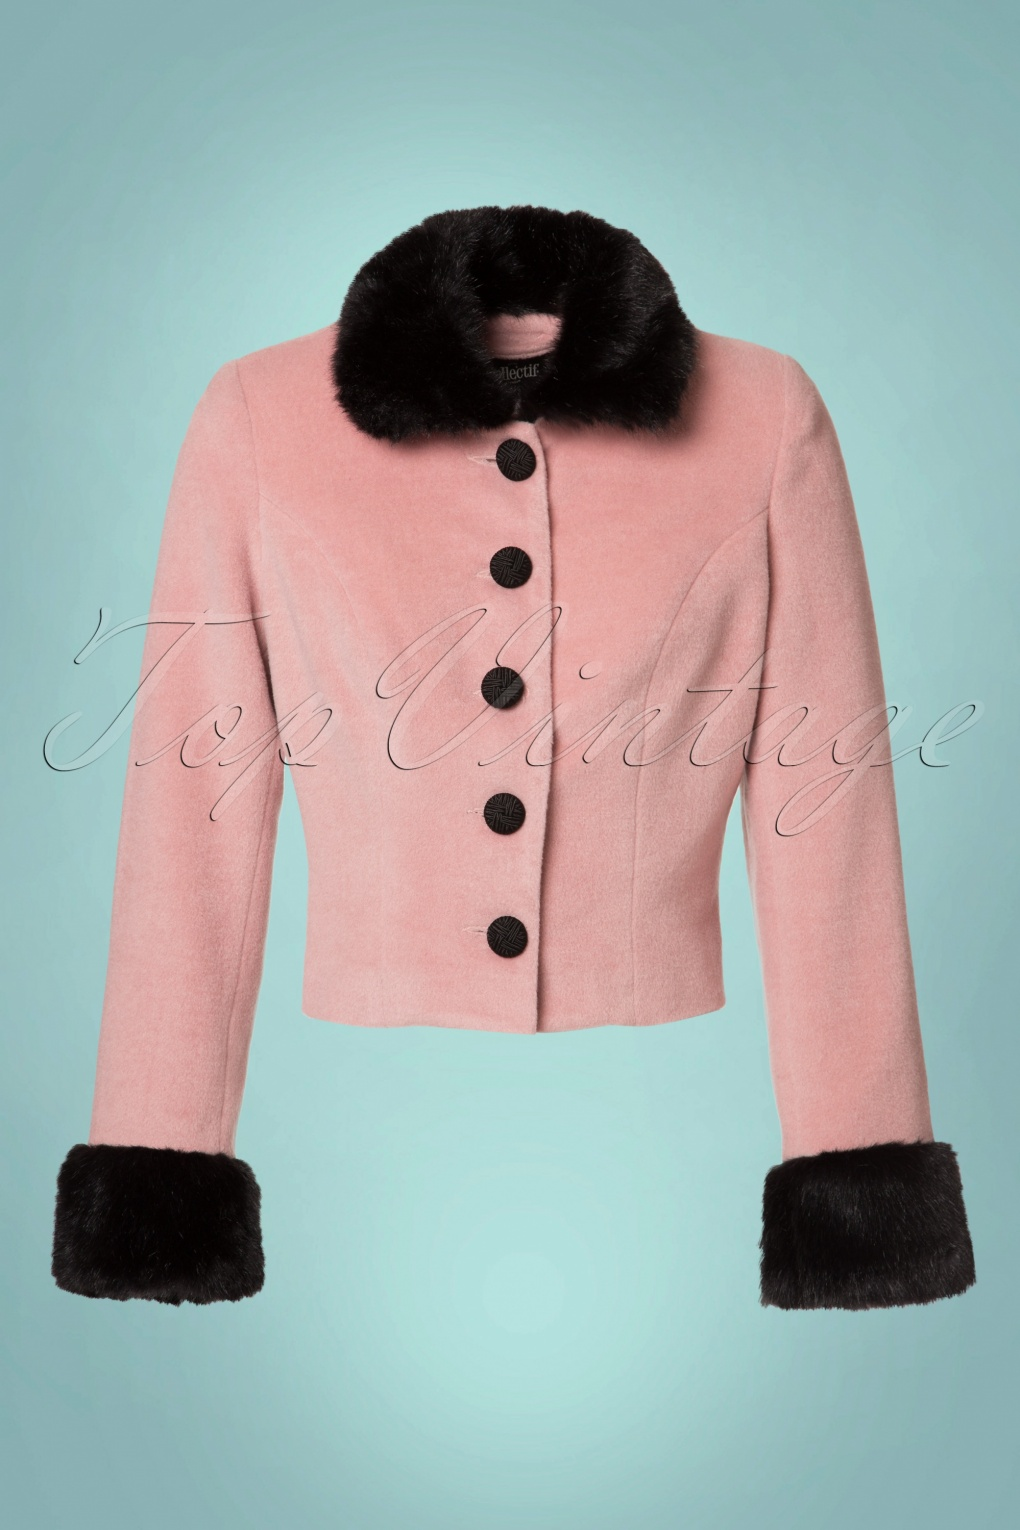 1950s Jackets and Coats | Swing, Pin Up, Rockabilly 50s Marianne Fur Trim Jacket in Pink £86.44 AT vintagedancer.com